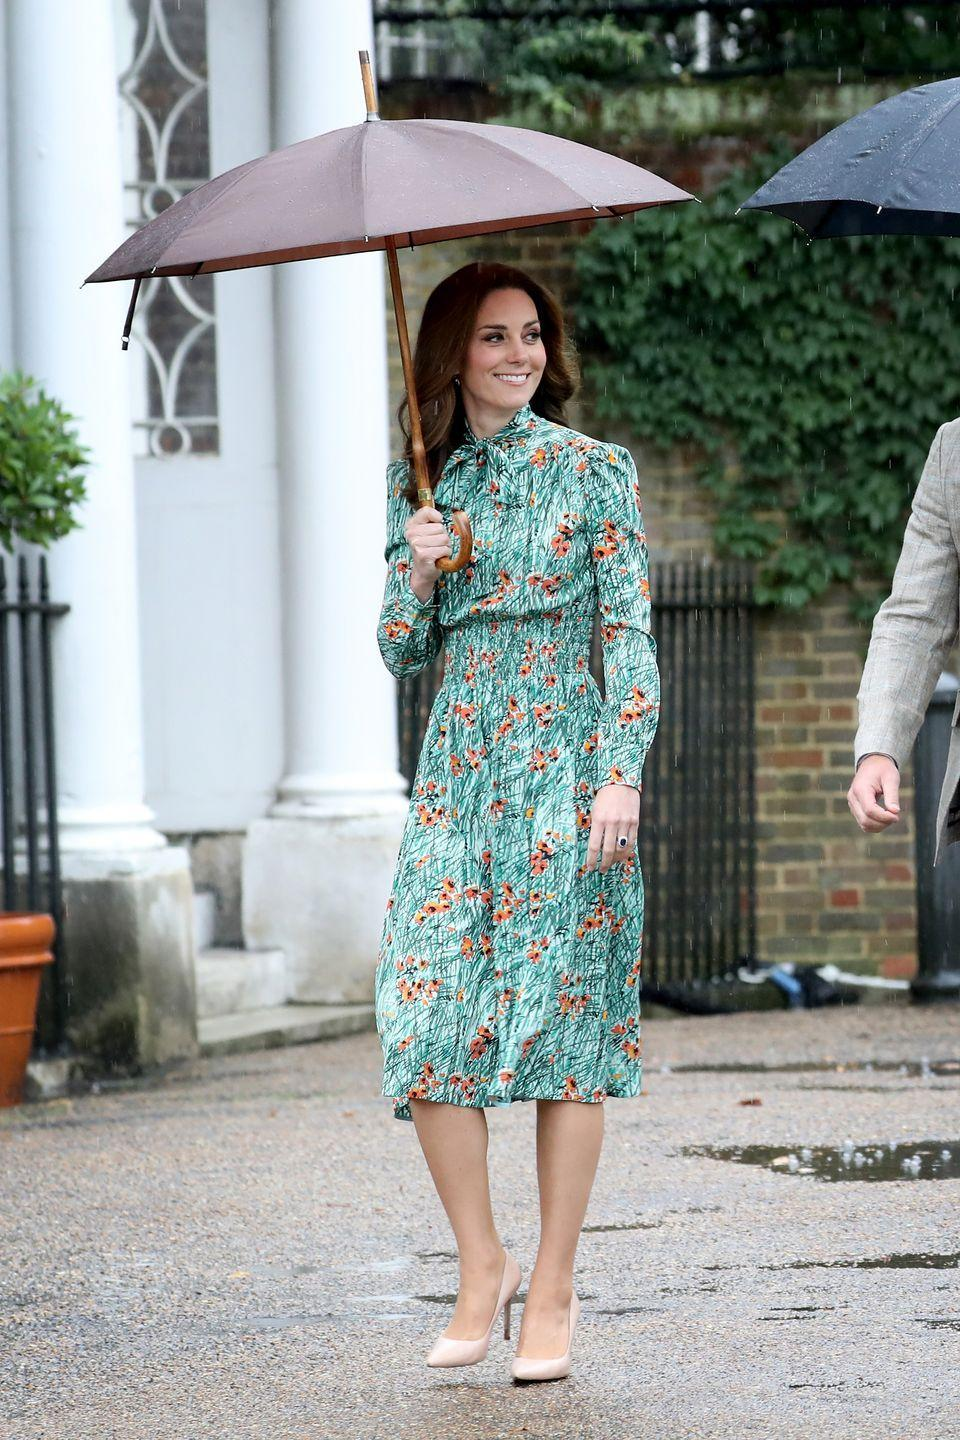 "<p>Duchess Kate arrives at the Sunken Garden at Kensington Palace <a href=""https://www.townandcountrymag.com/society/tradition/a12137474/prince-william-prince-harry-princess-diana-memorial-garden-20th-anniversary-eve/"" rel=""nofollow noopener"" target=""_blank"" data-ylk=""slk:to commemorate the 20th anniversary of Princess Diana's death"" class=""link rapid-noclick-resp"">to commemorate the 20th anniversary of Princess Diana's death</a> wearing a floral Prada dress. </p>"